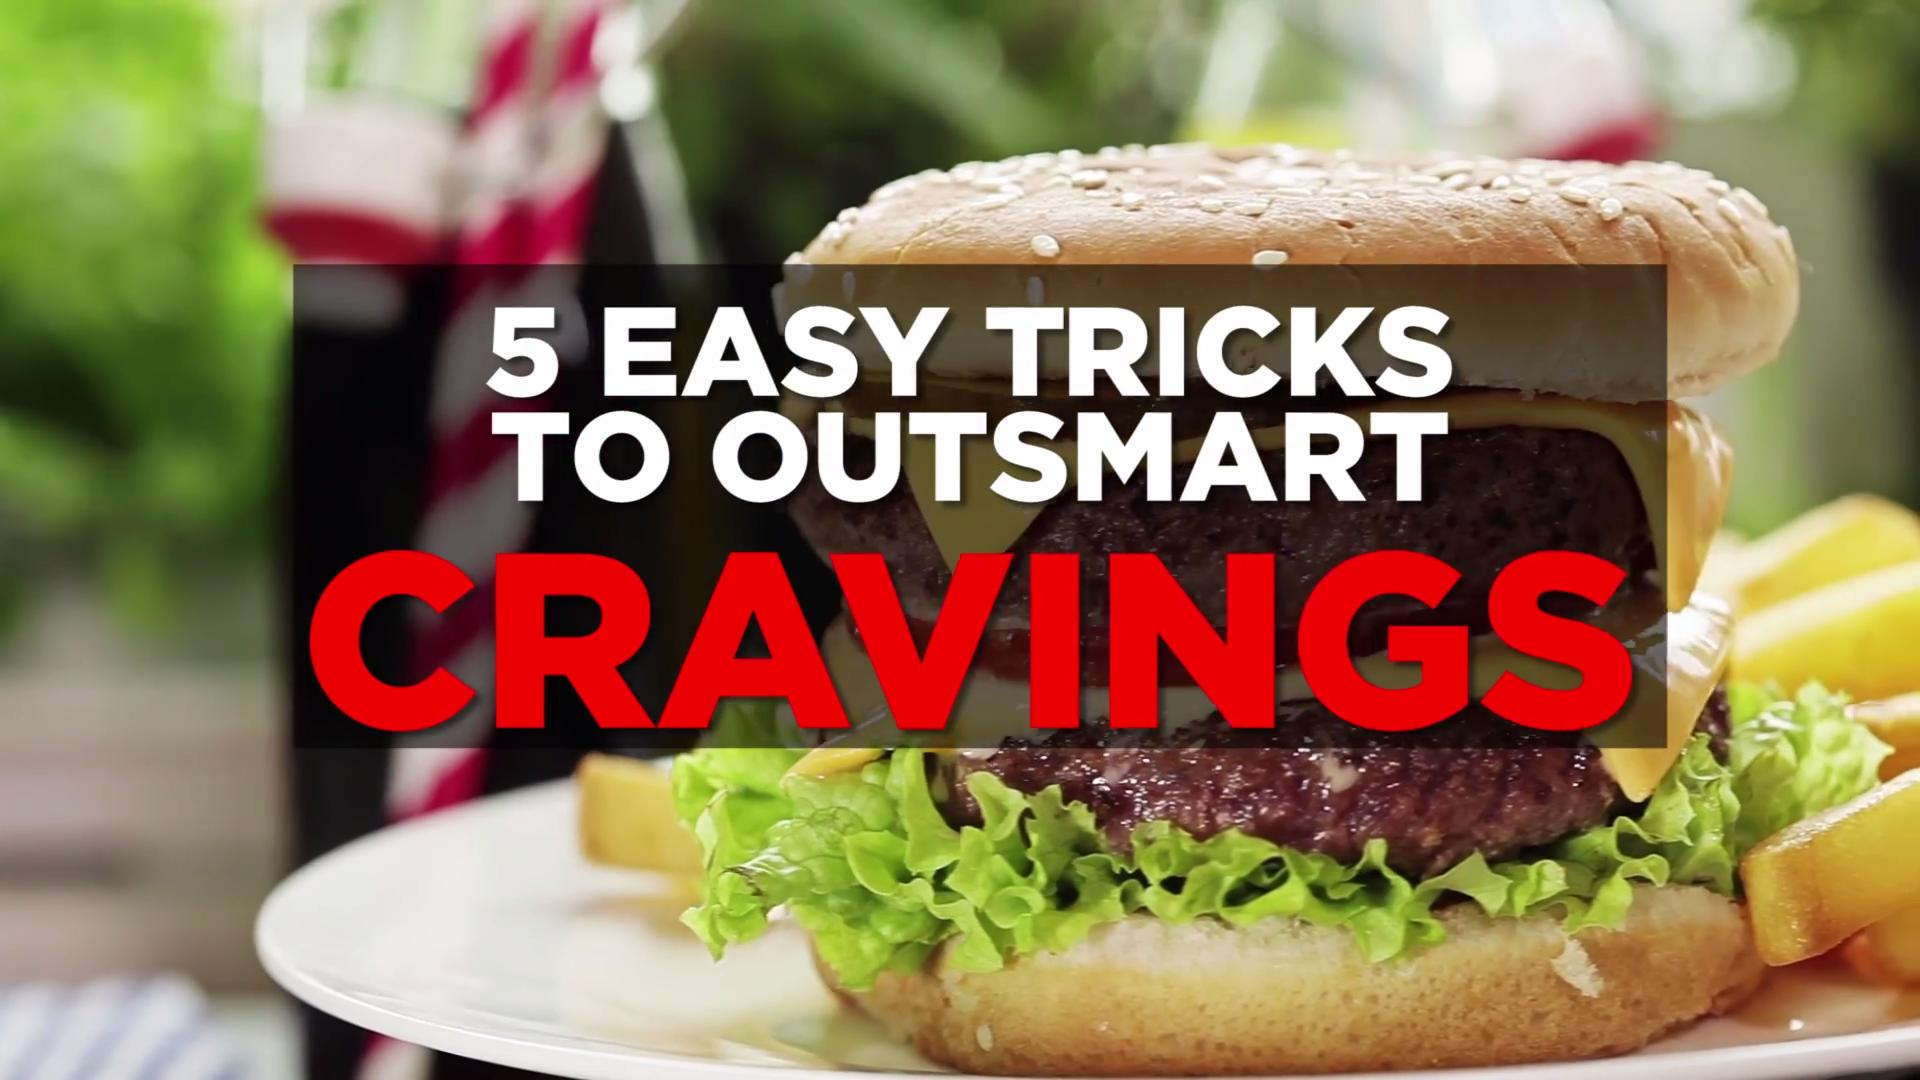 Learn to crush cravings